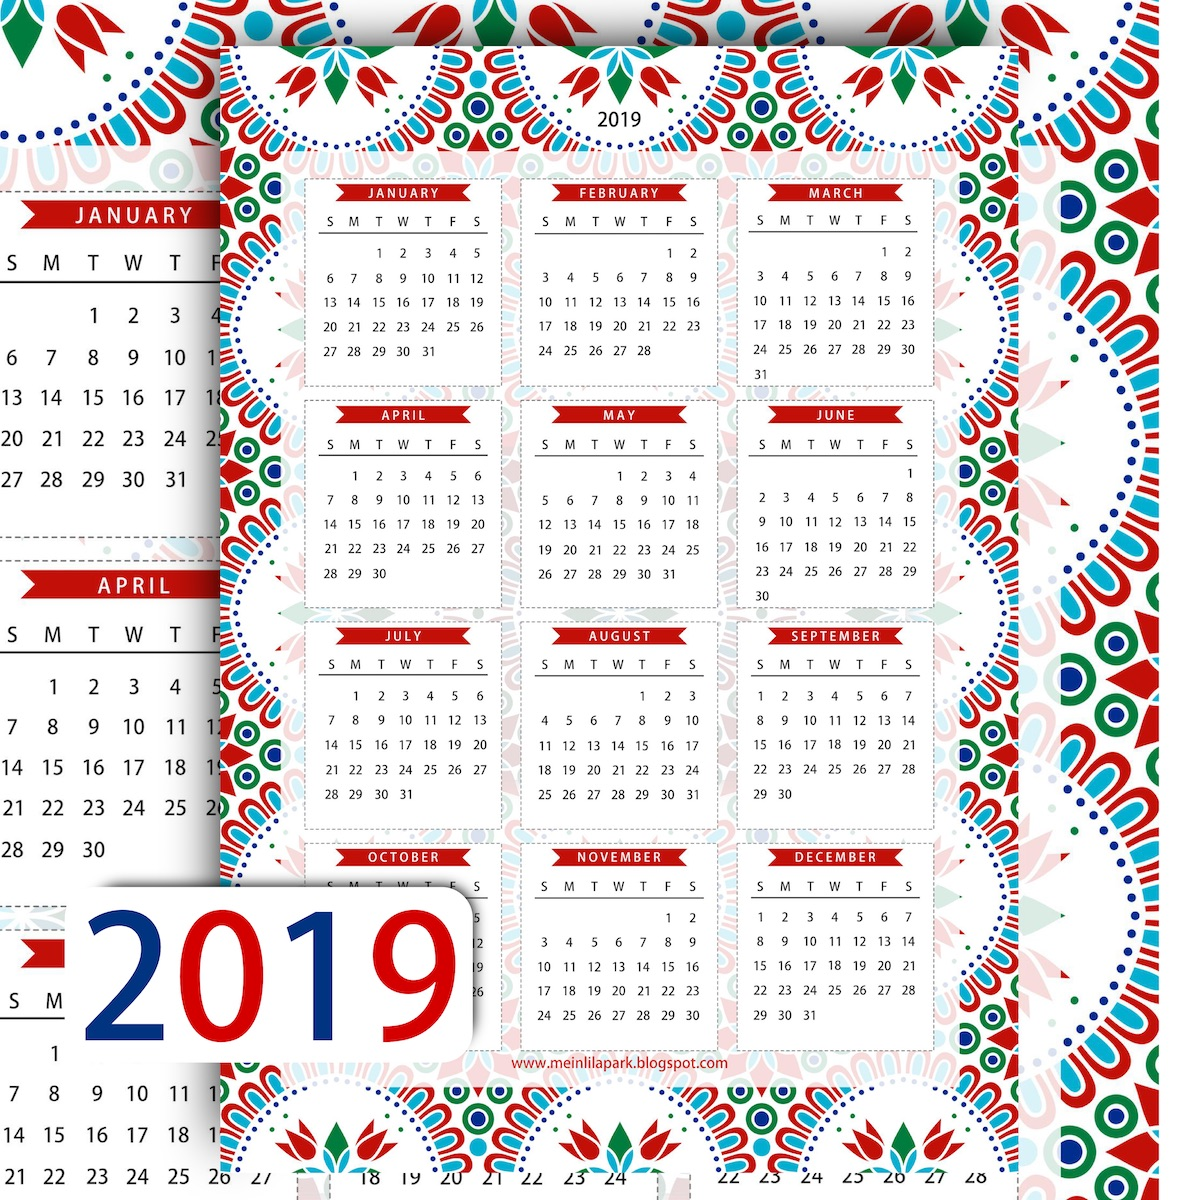 here is another free printable 2019 calendar page for you this one has a geometrical floral design and a fresh looking red and blue color scheme